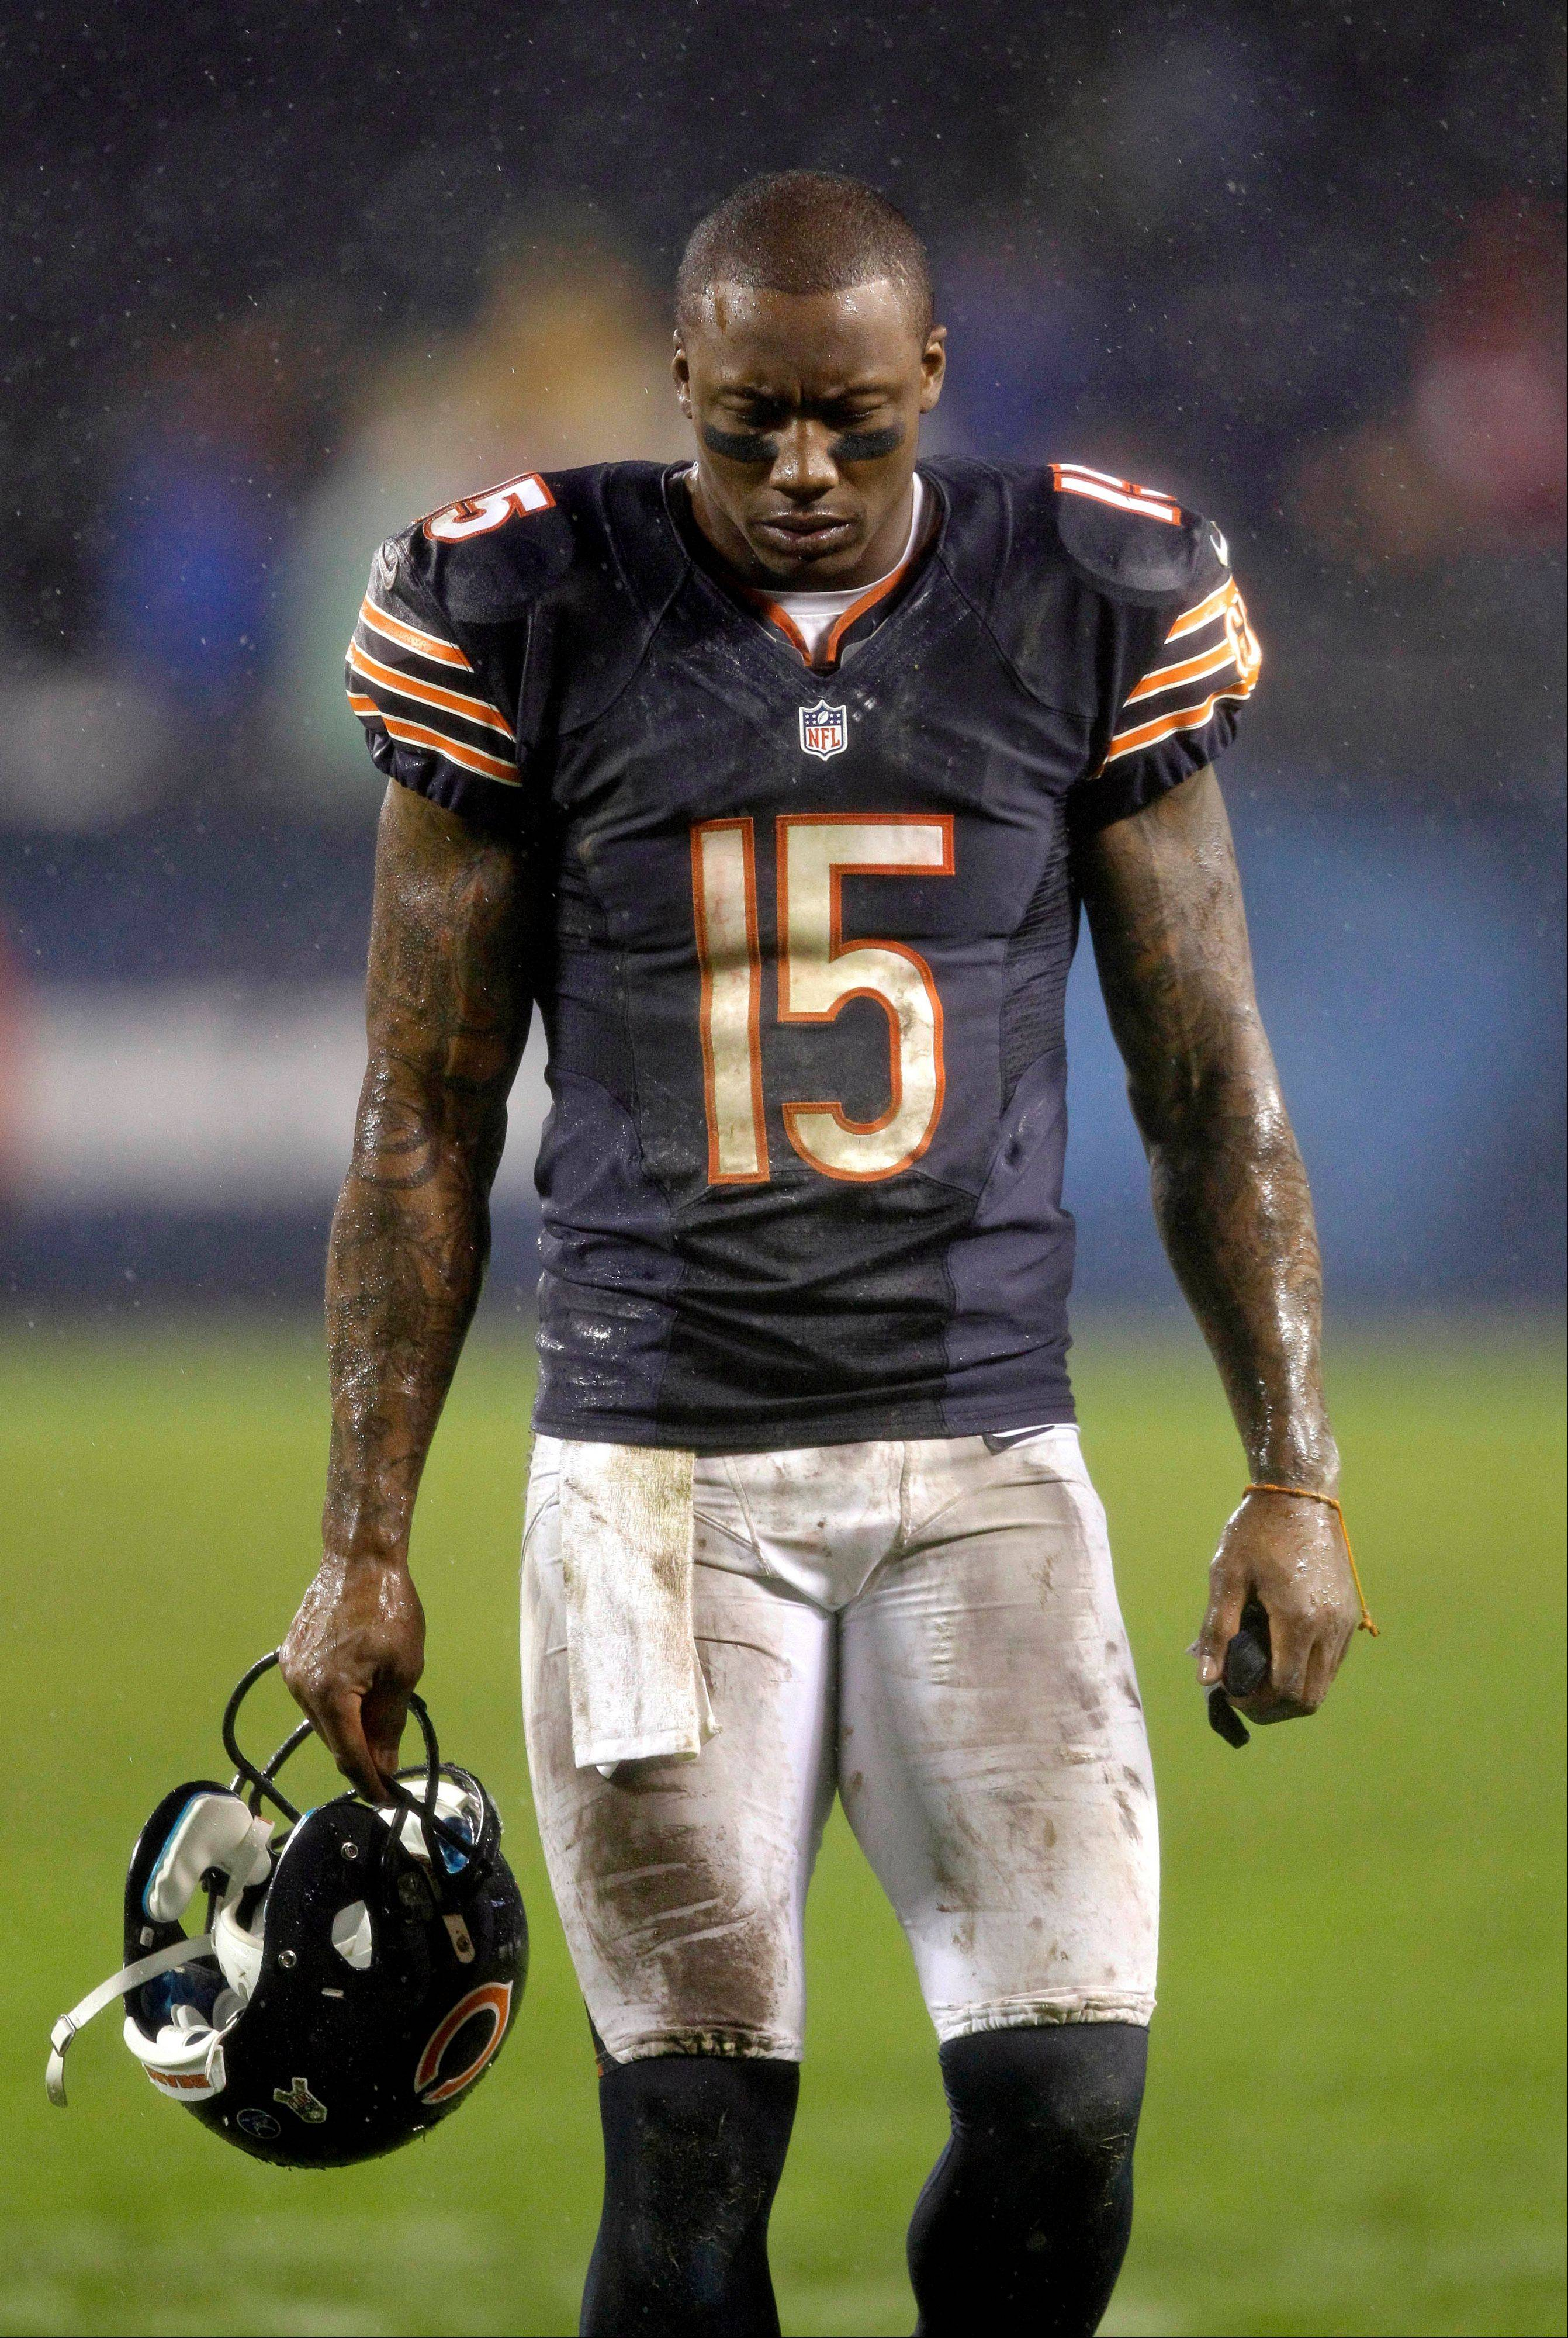 Bears wide receiver Brandon Marshall walks off the field after the Bears' 13-6 loss to the Houston Texans on Sunday night.